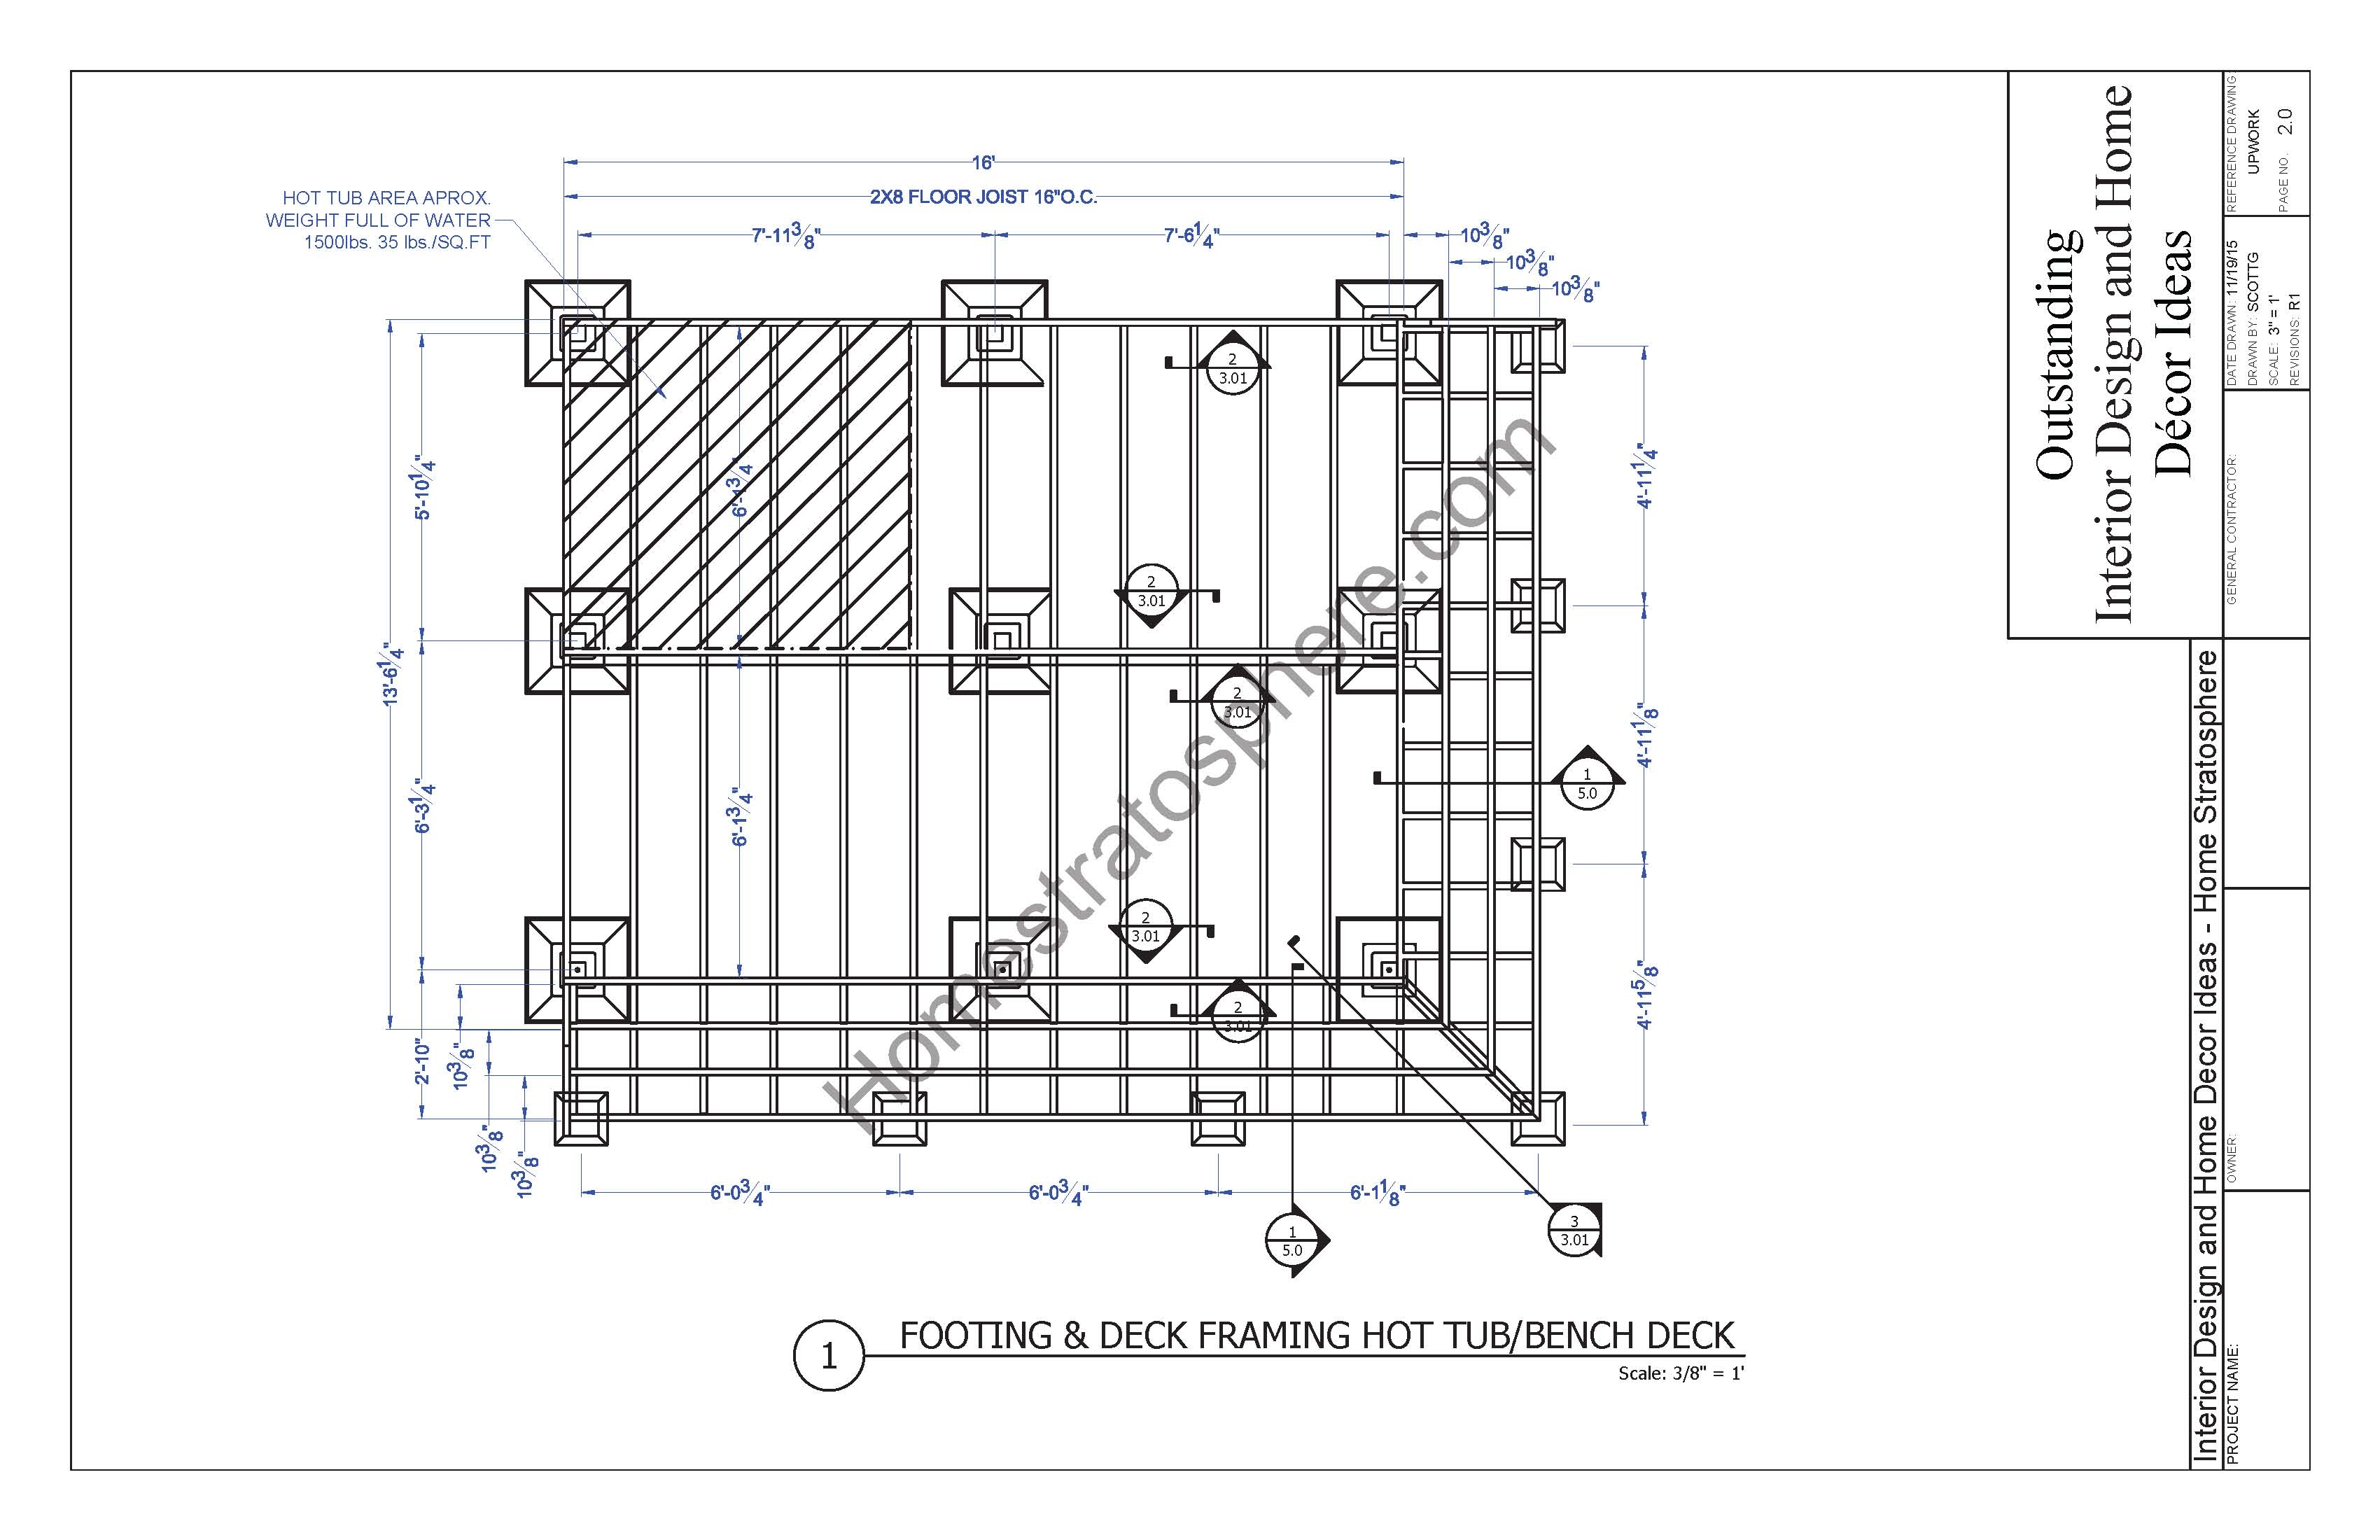 Hot tub deck design plan free pdf download Blueprint designer free